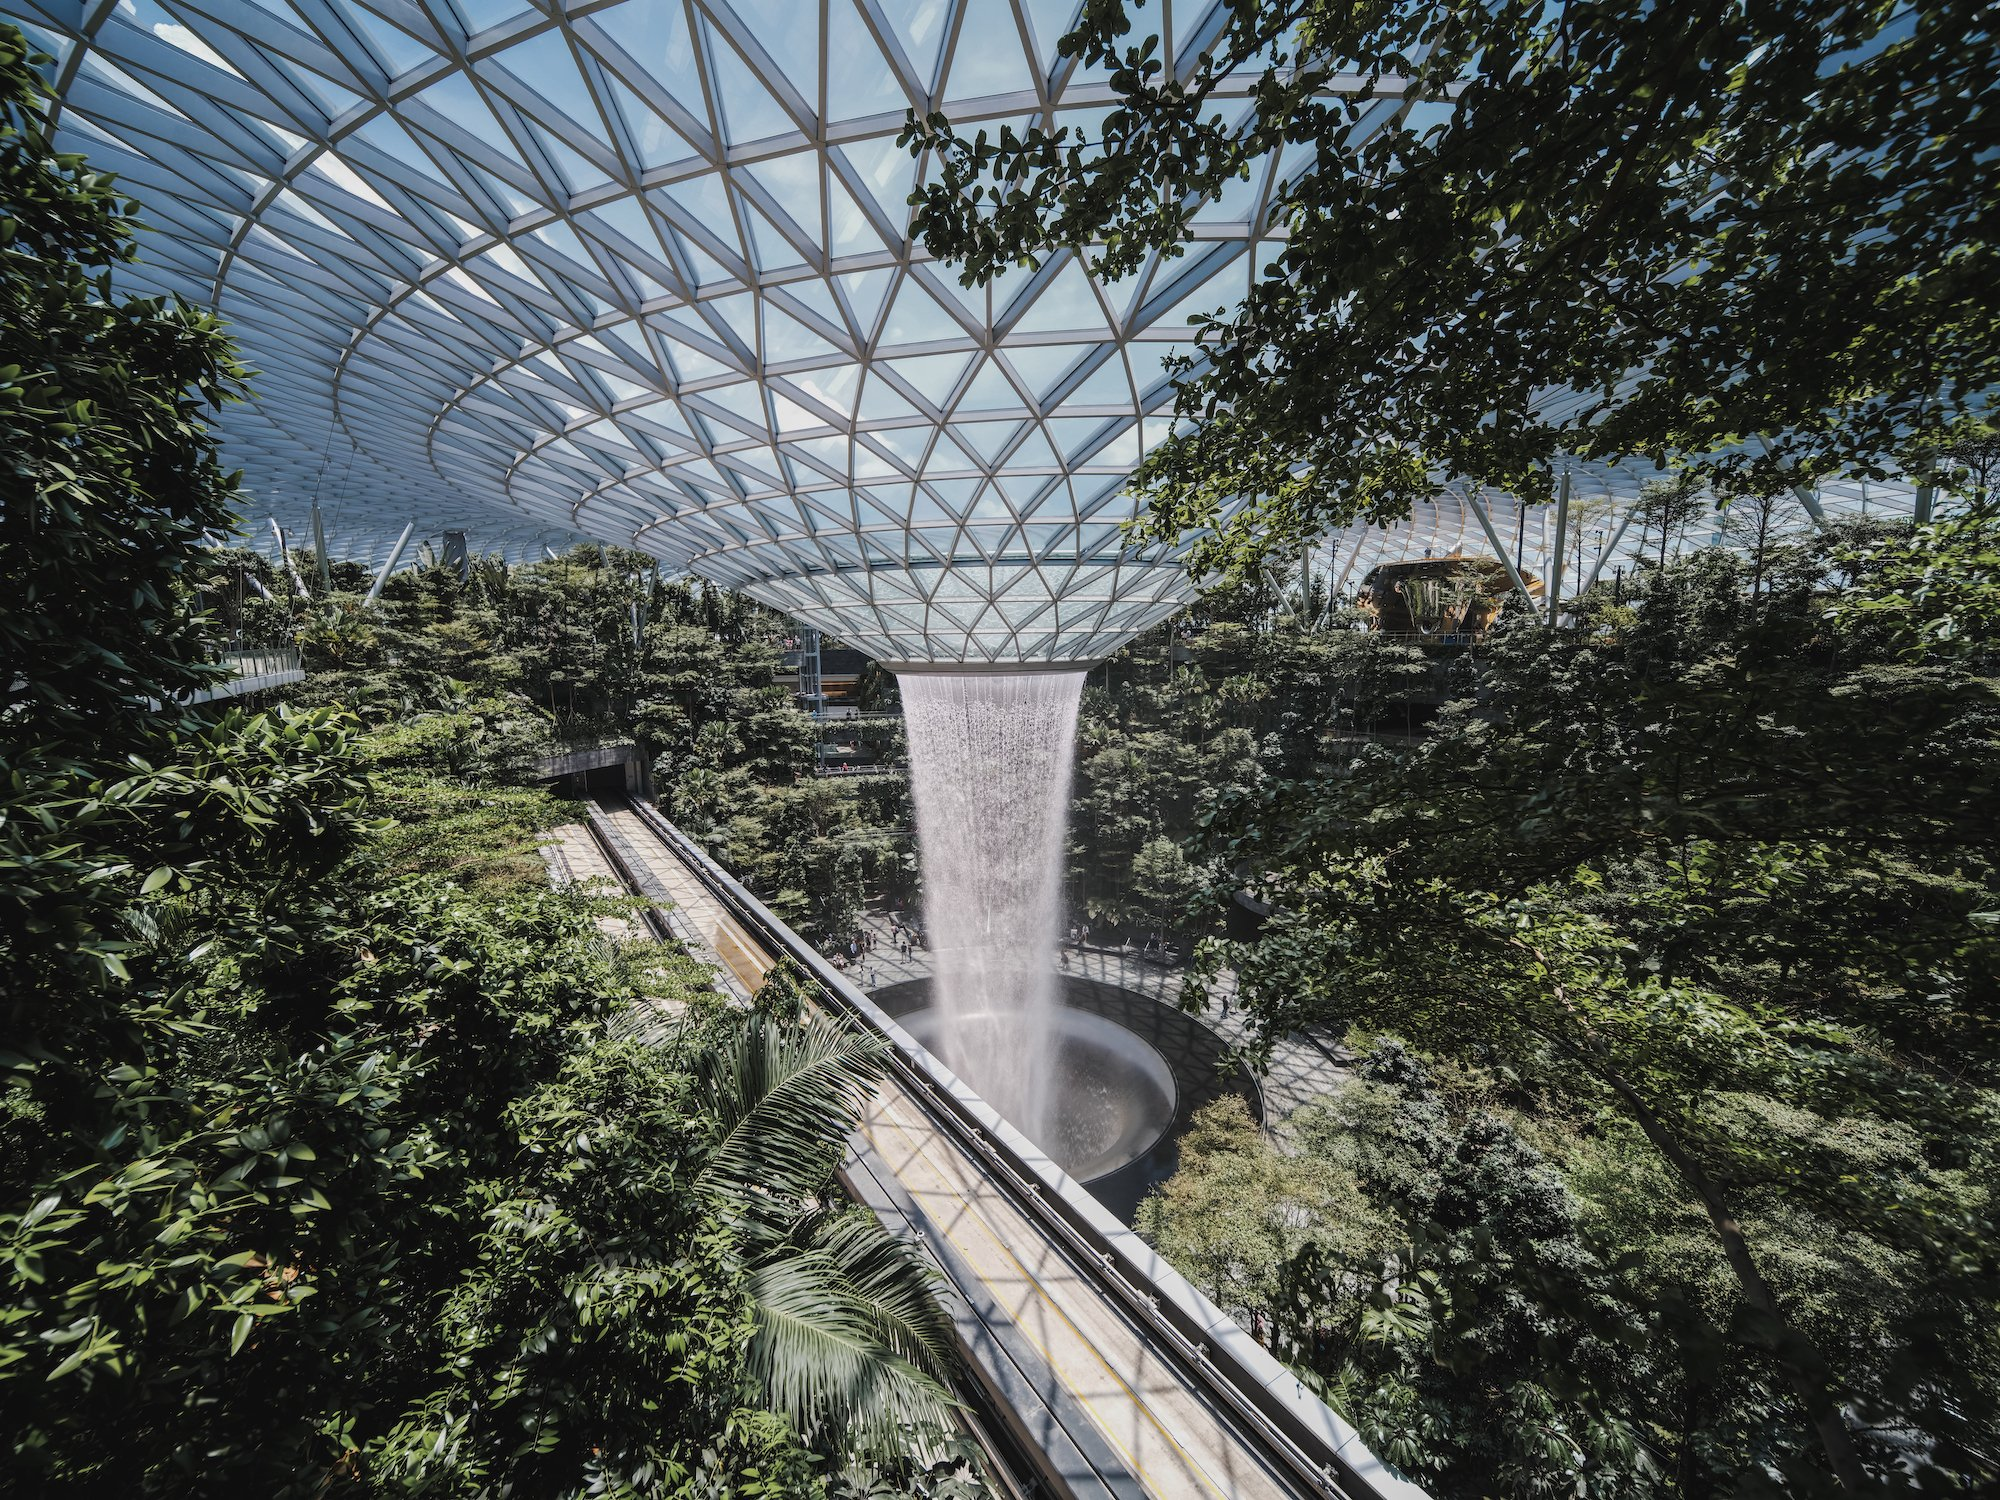 Laowa 17mm f:4 Ultra Wide GFX Zero D lens Fujifilm GFX 100 Tallest Indoor Waterfall at Jewel Changi Airport 4